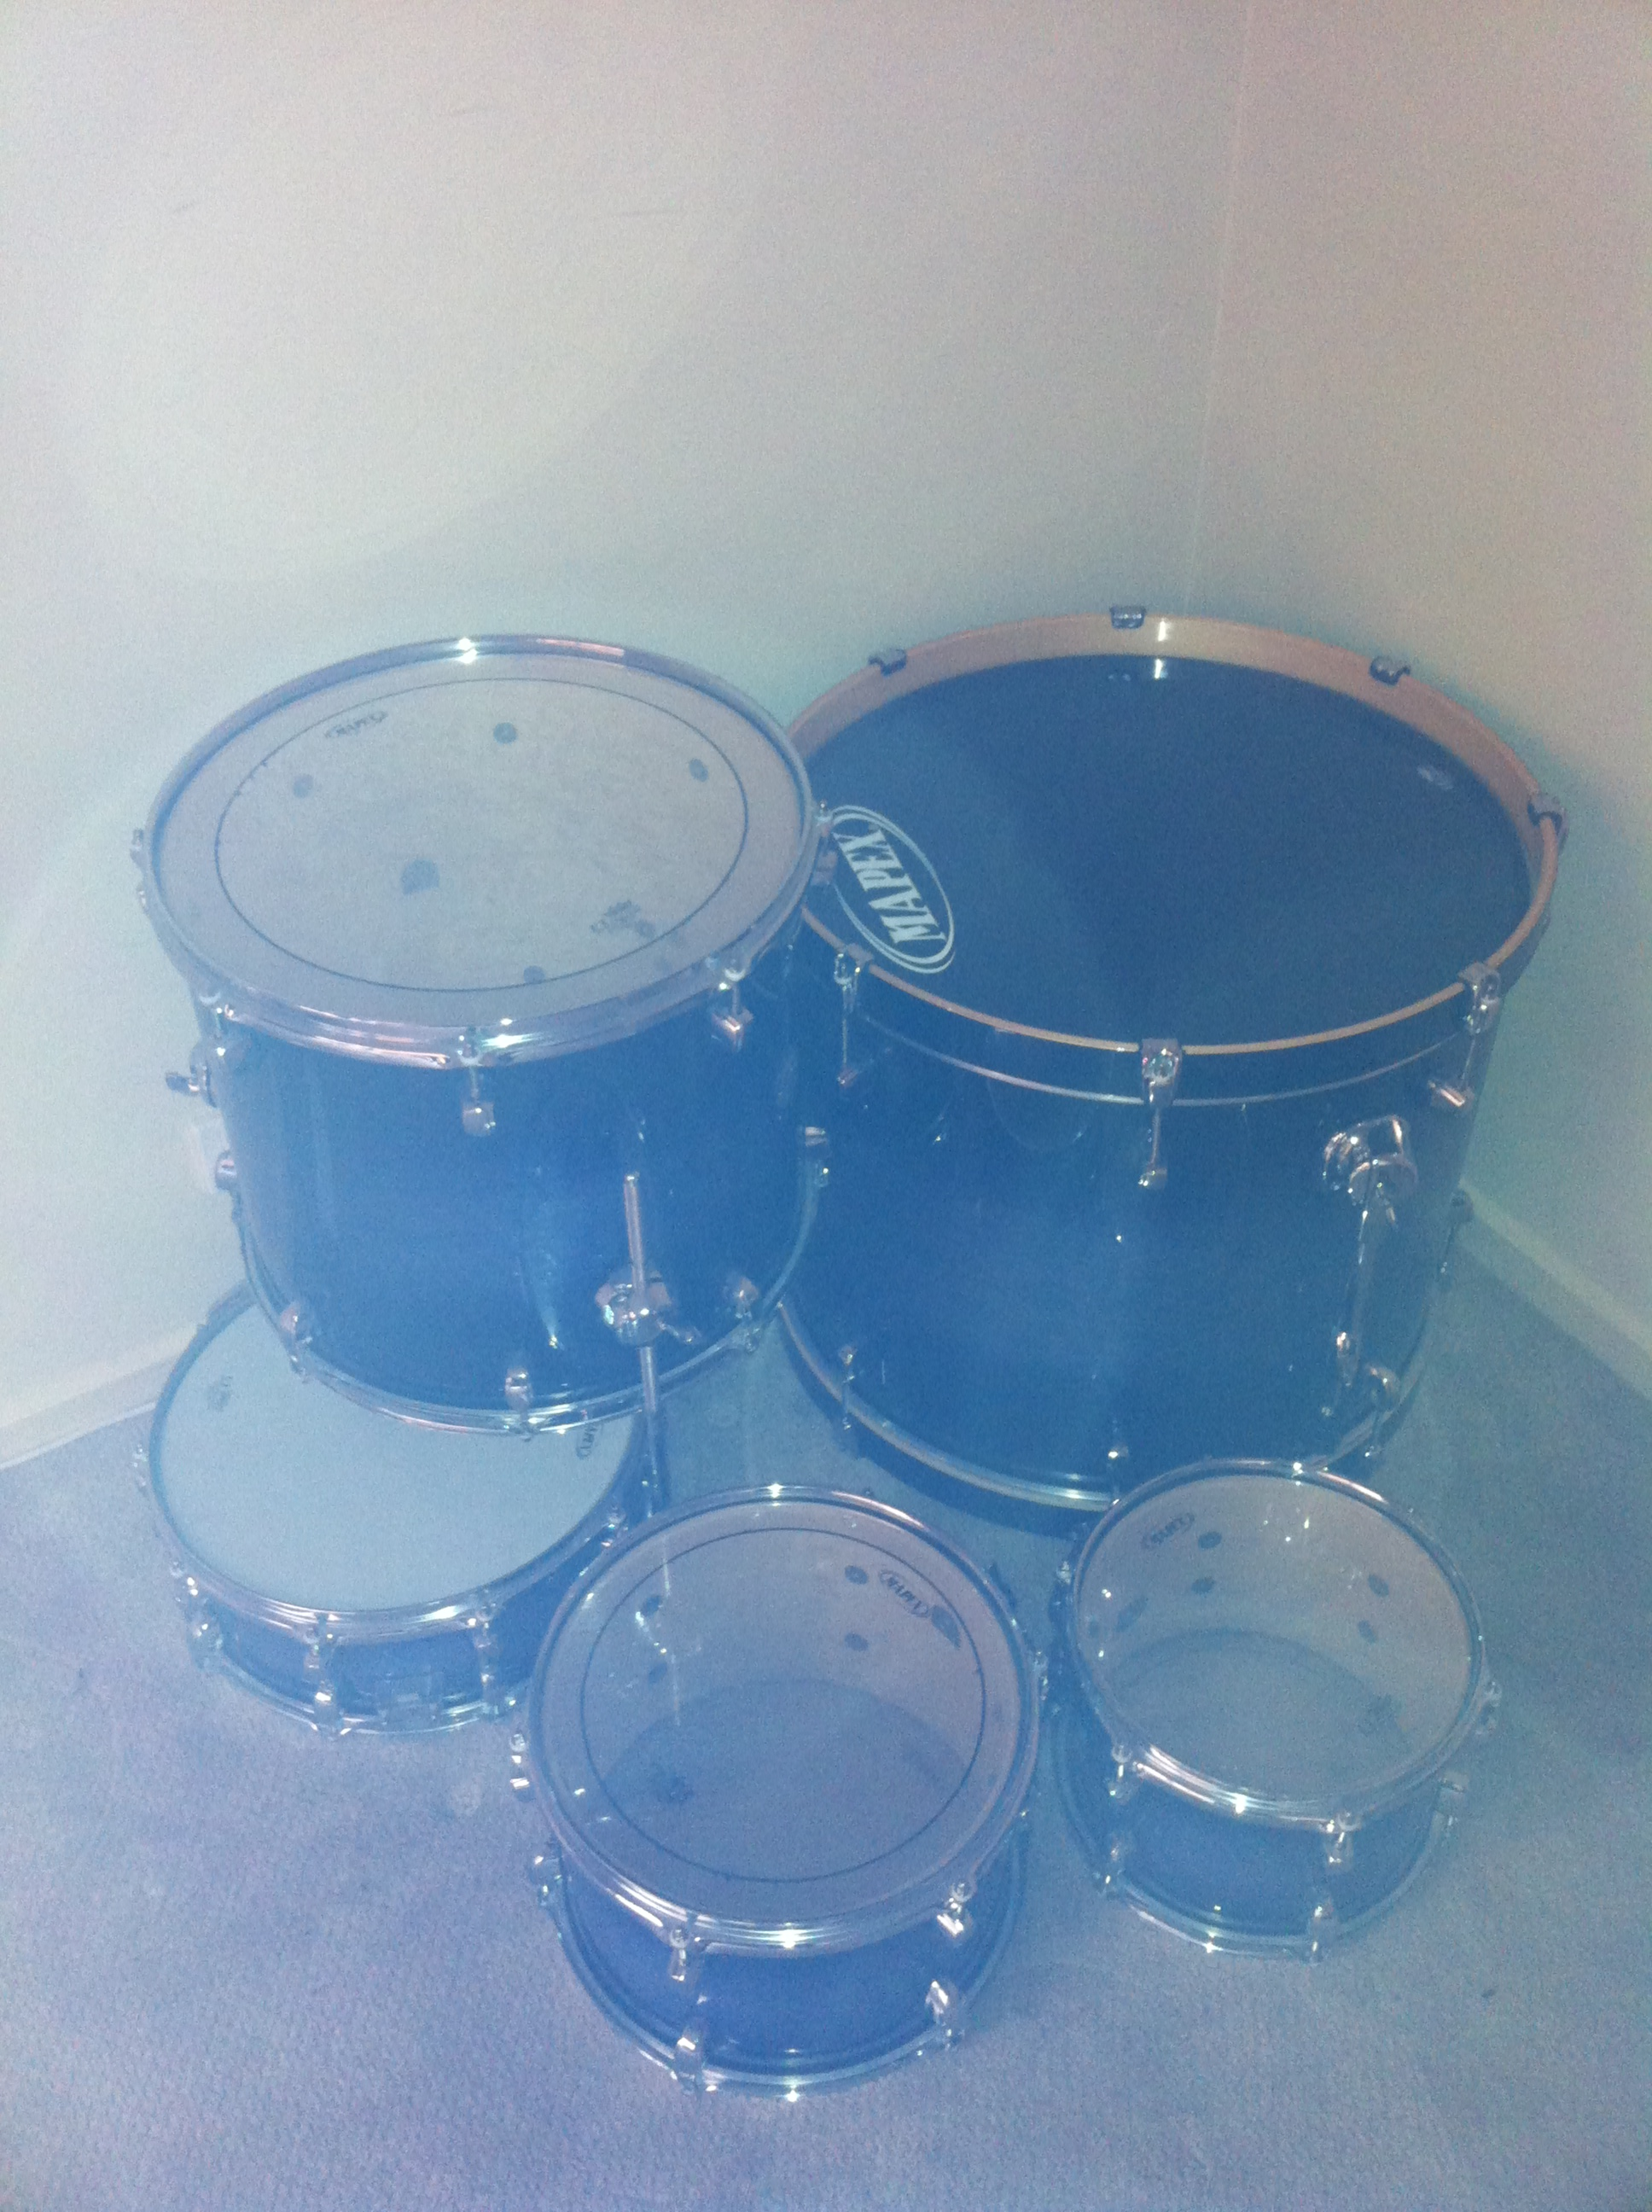 FOR SALE: 5pc Mapex Meridian Maple (shell kit)